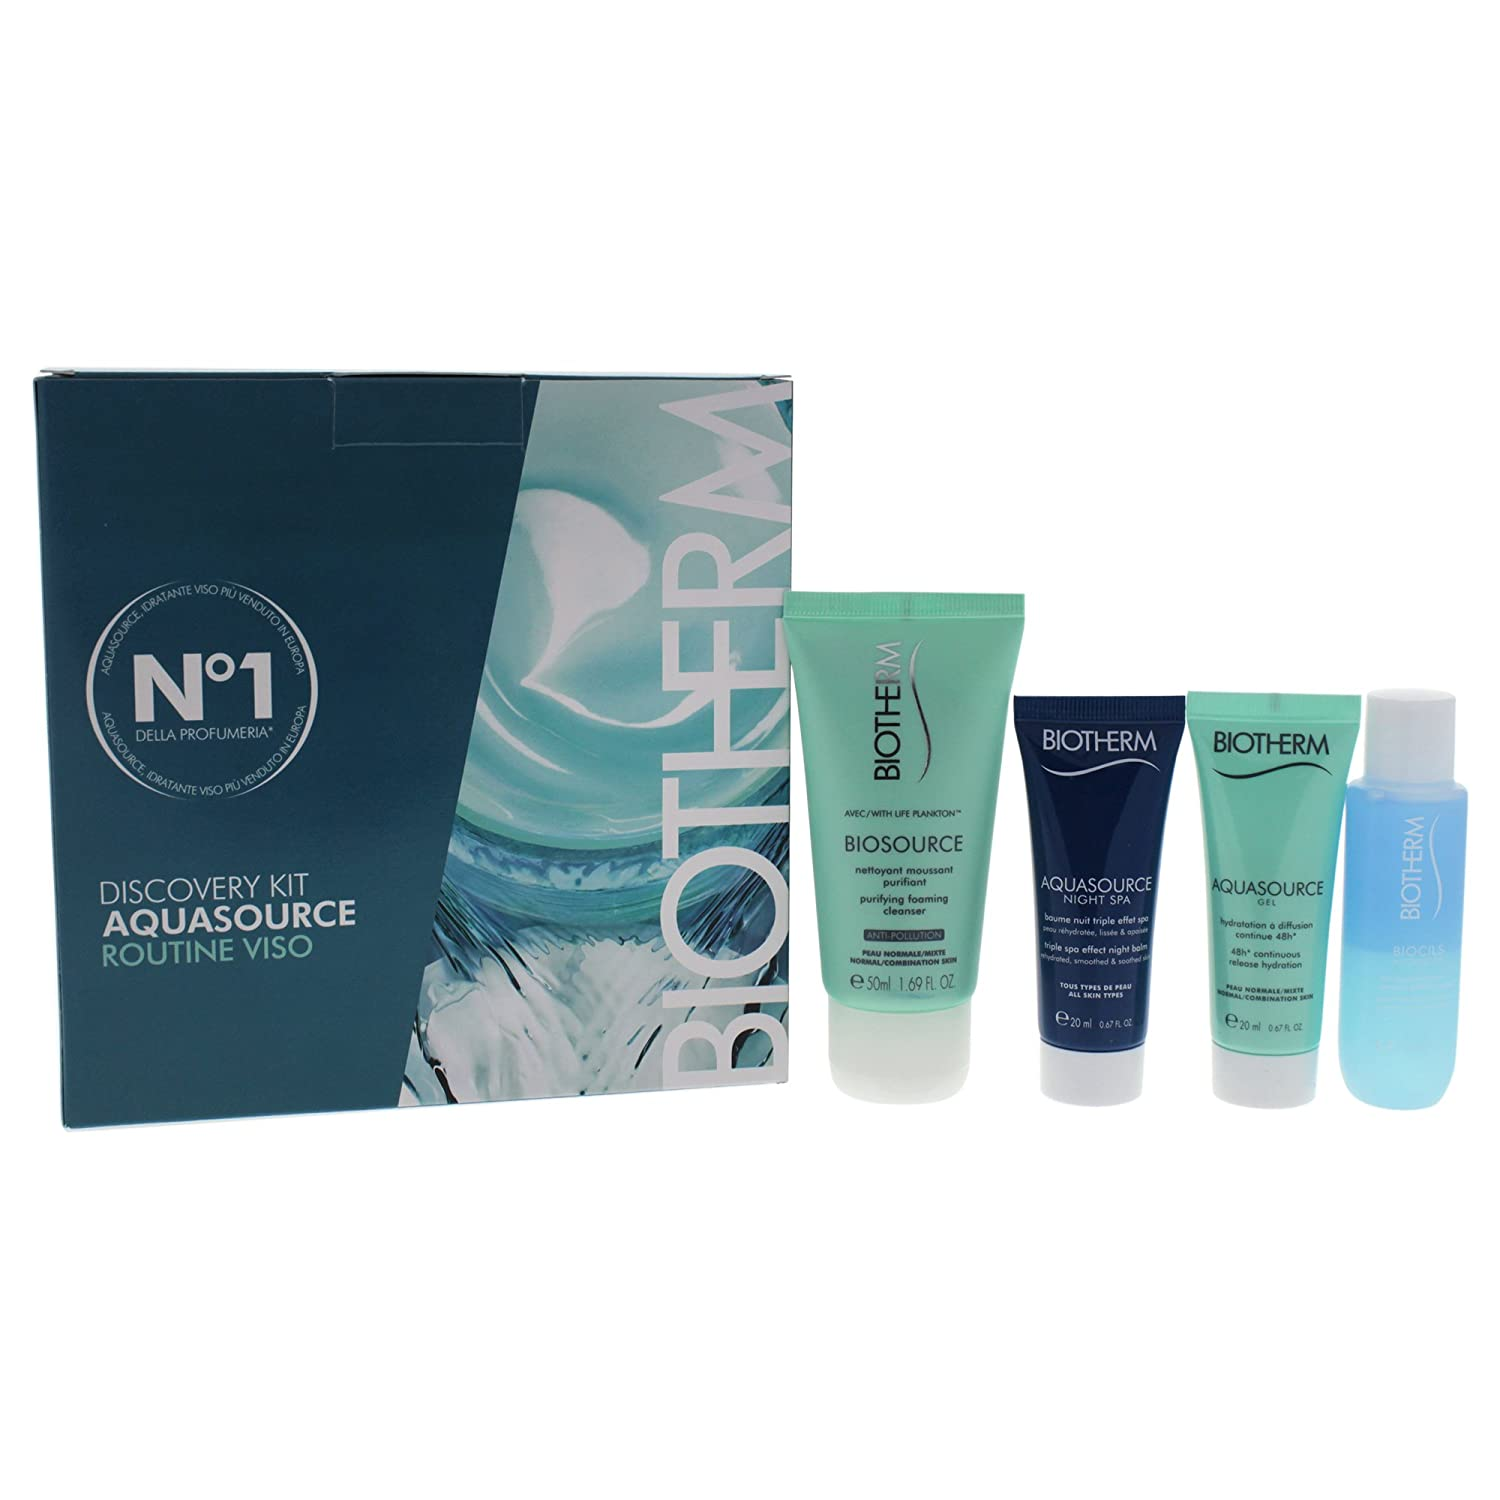 Biotherm 4 Piece Aqua Source for Women, Discovery Kit PerfumeWorldWide Inc. Drop Ship 8024417935283